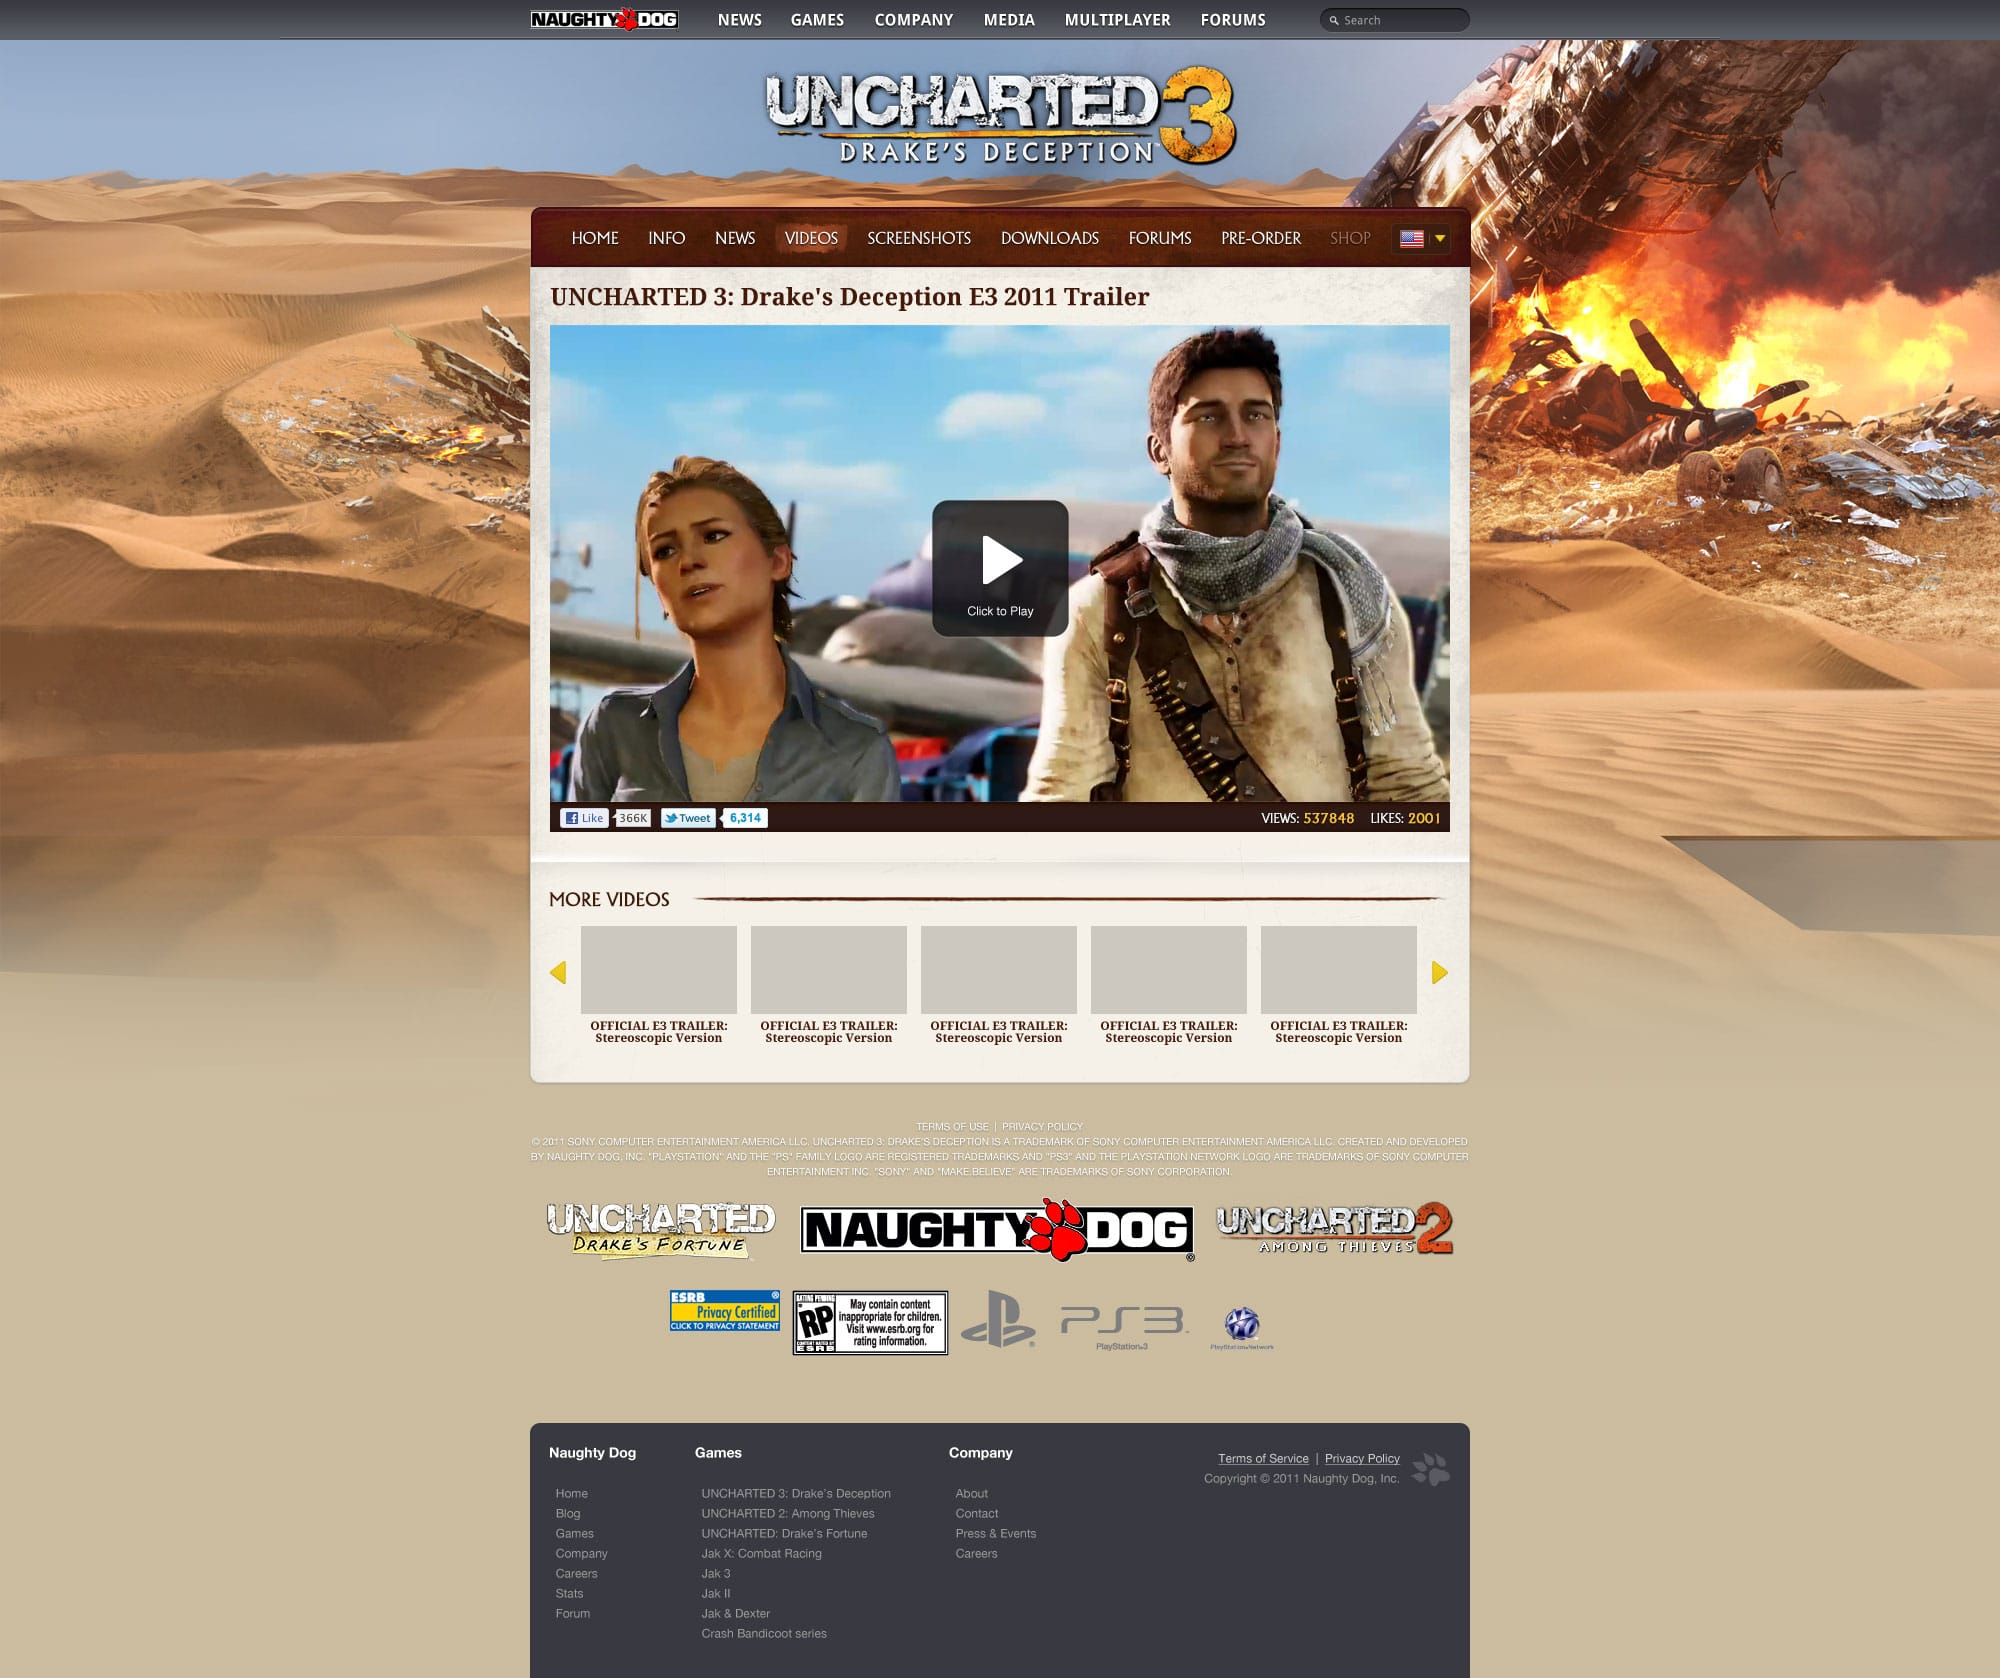 Uncharted 3 Page Design